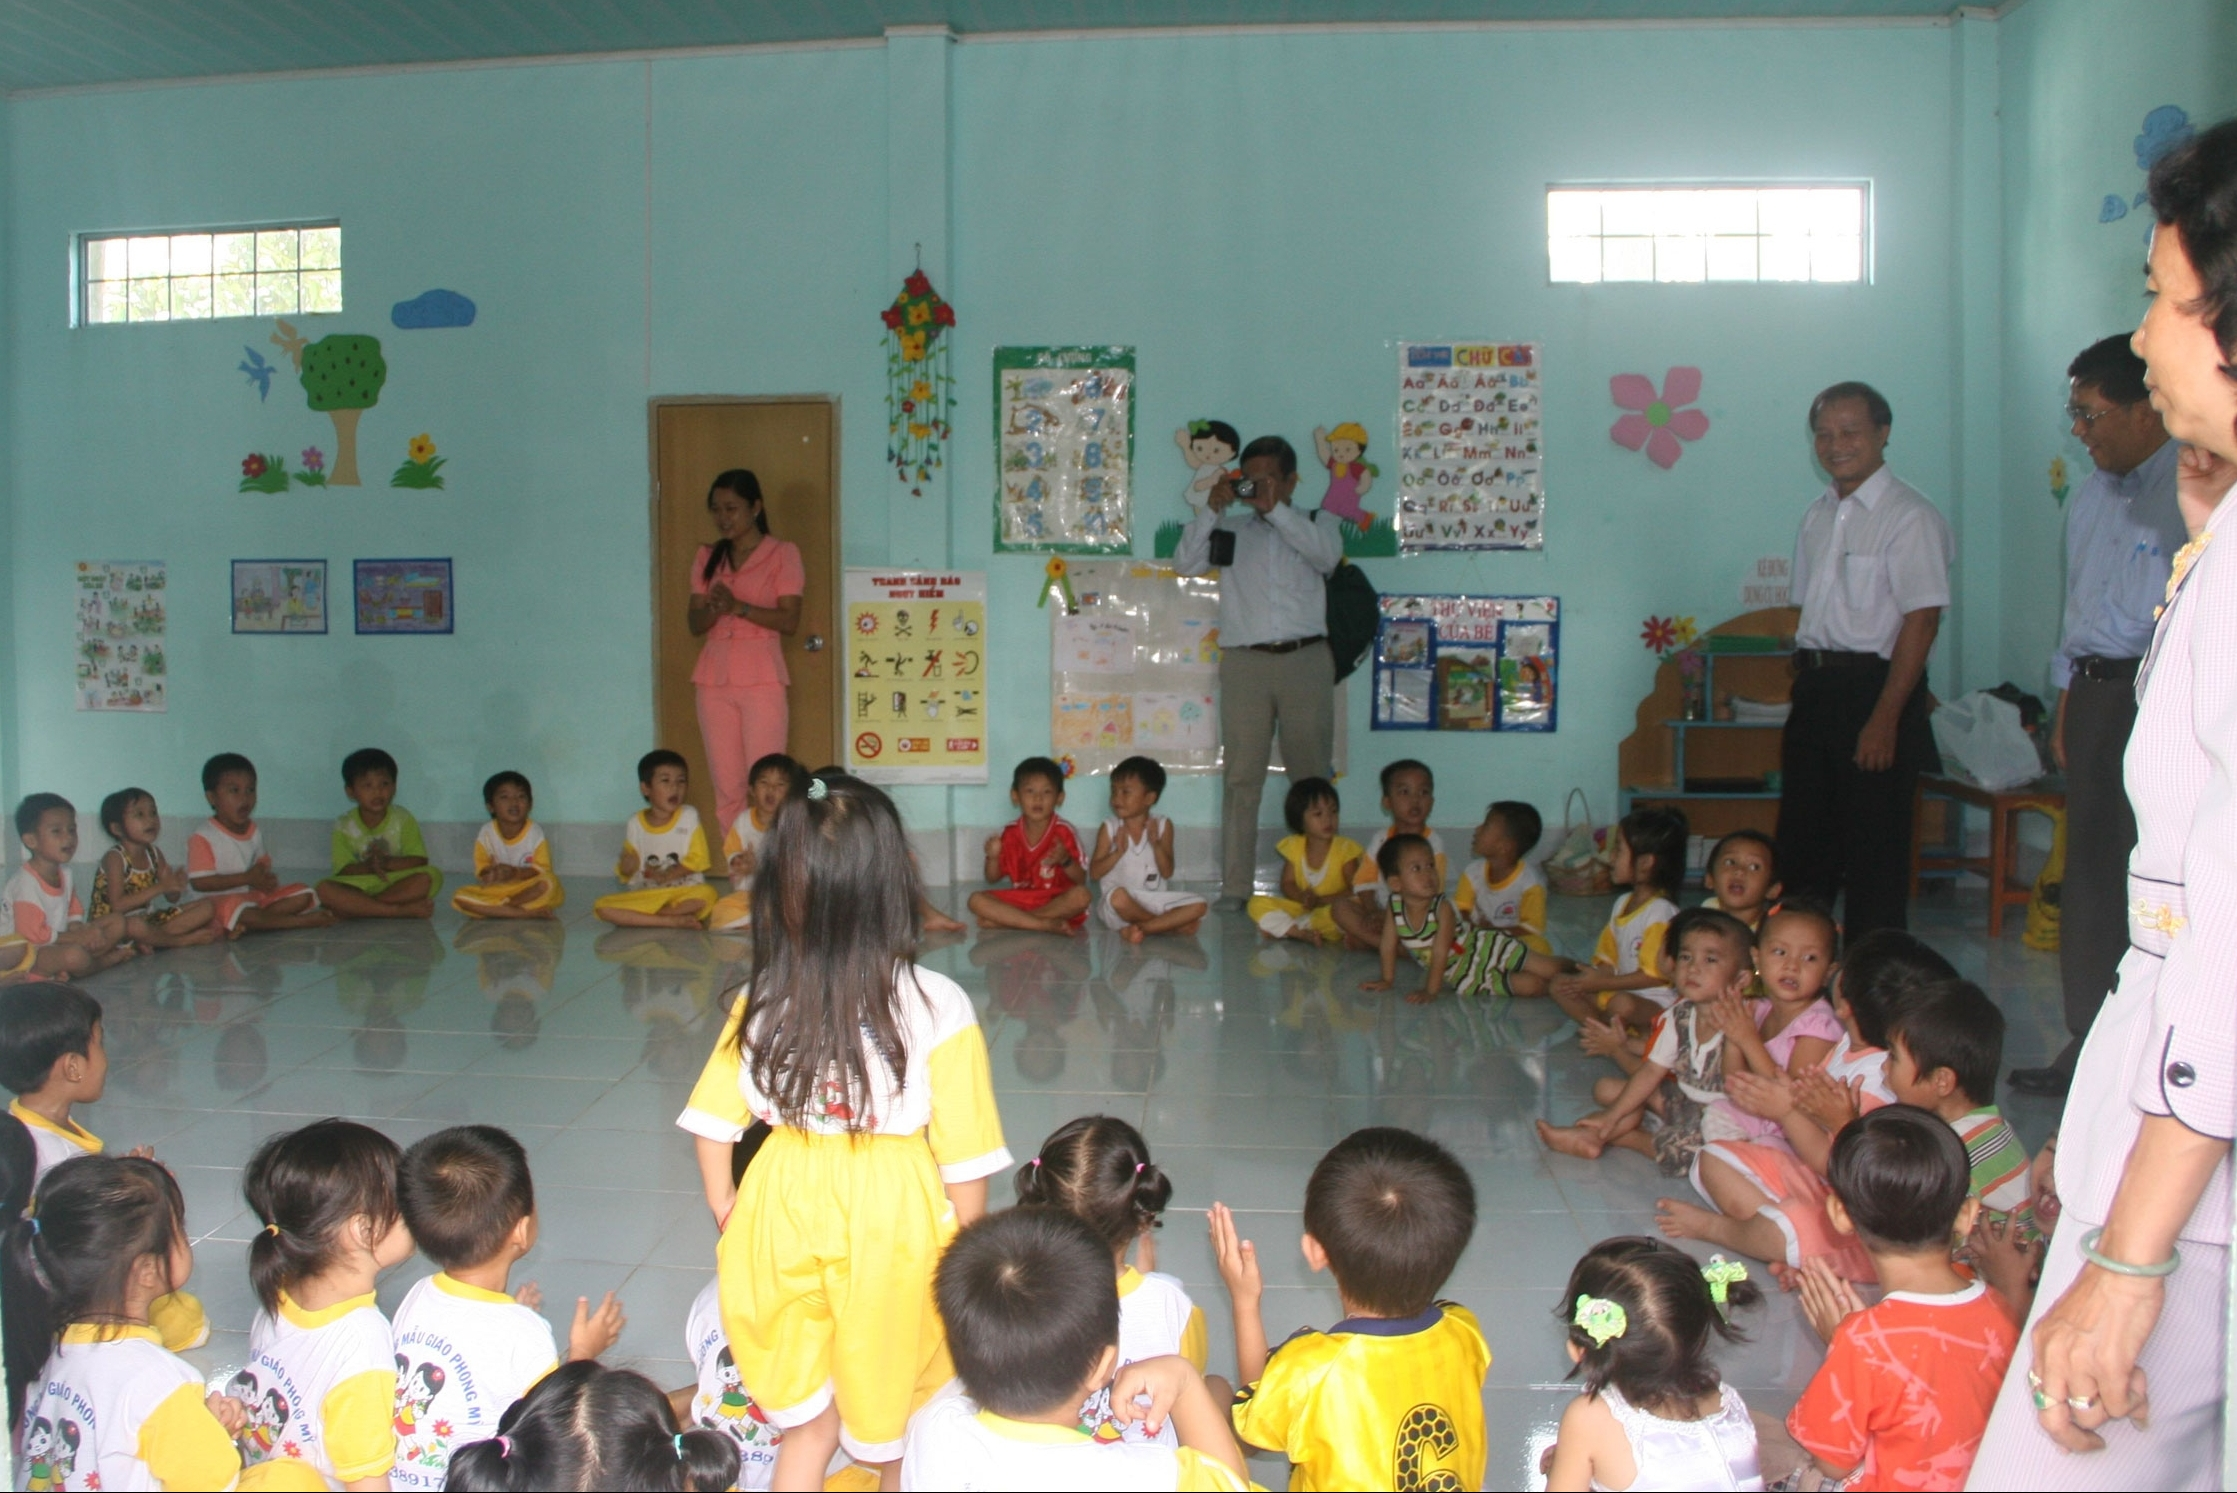 The new spacious classroom proving a more suitable learning environment for young children.